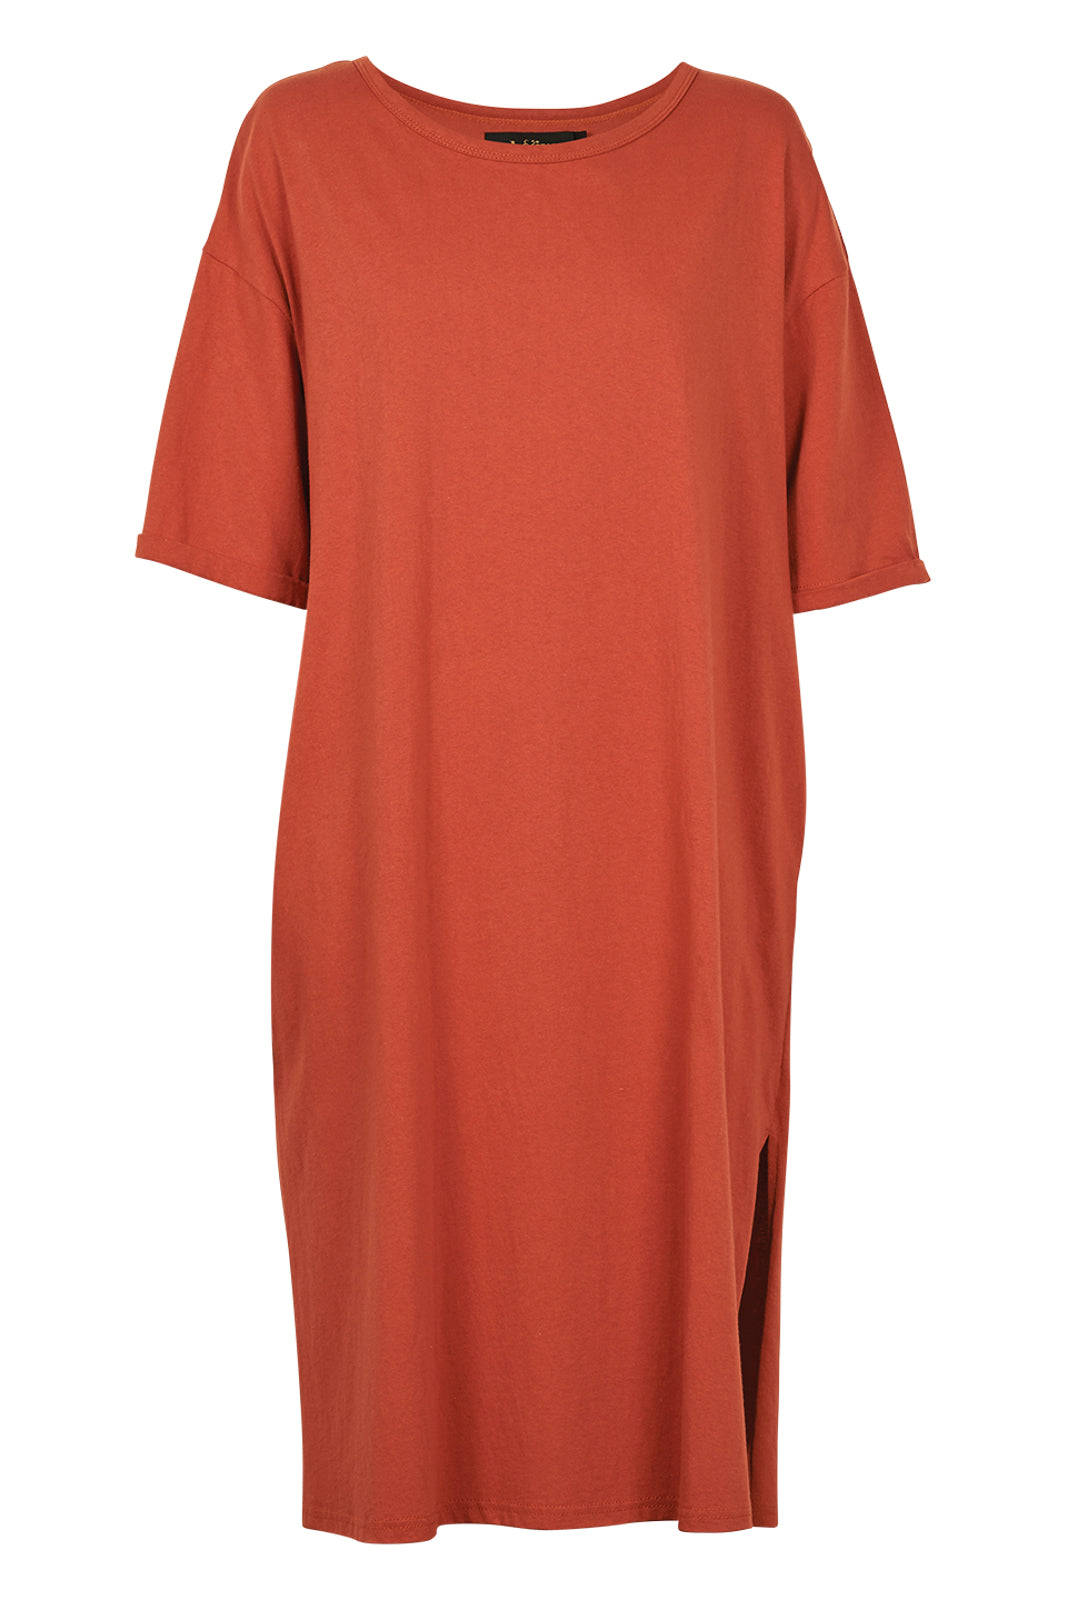 Rosa Tank Dress - Terracotta - eb&ive Clothing - Dress Mid